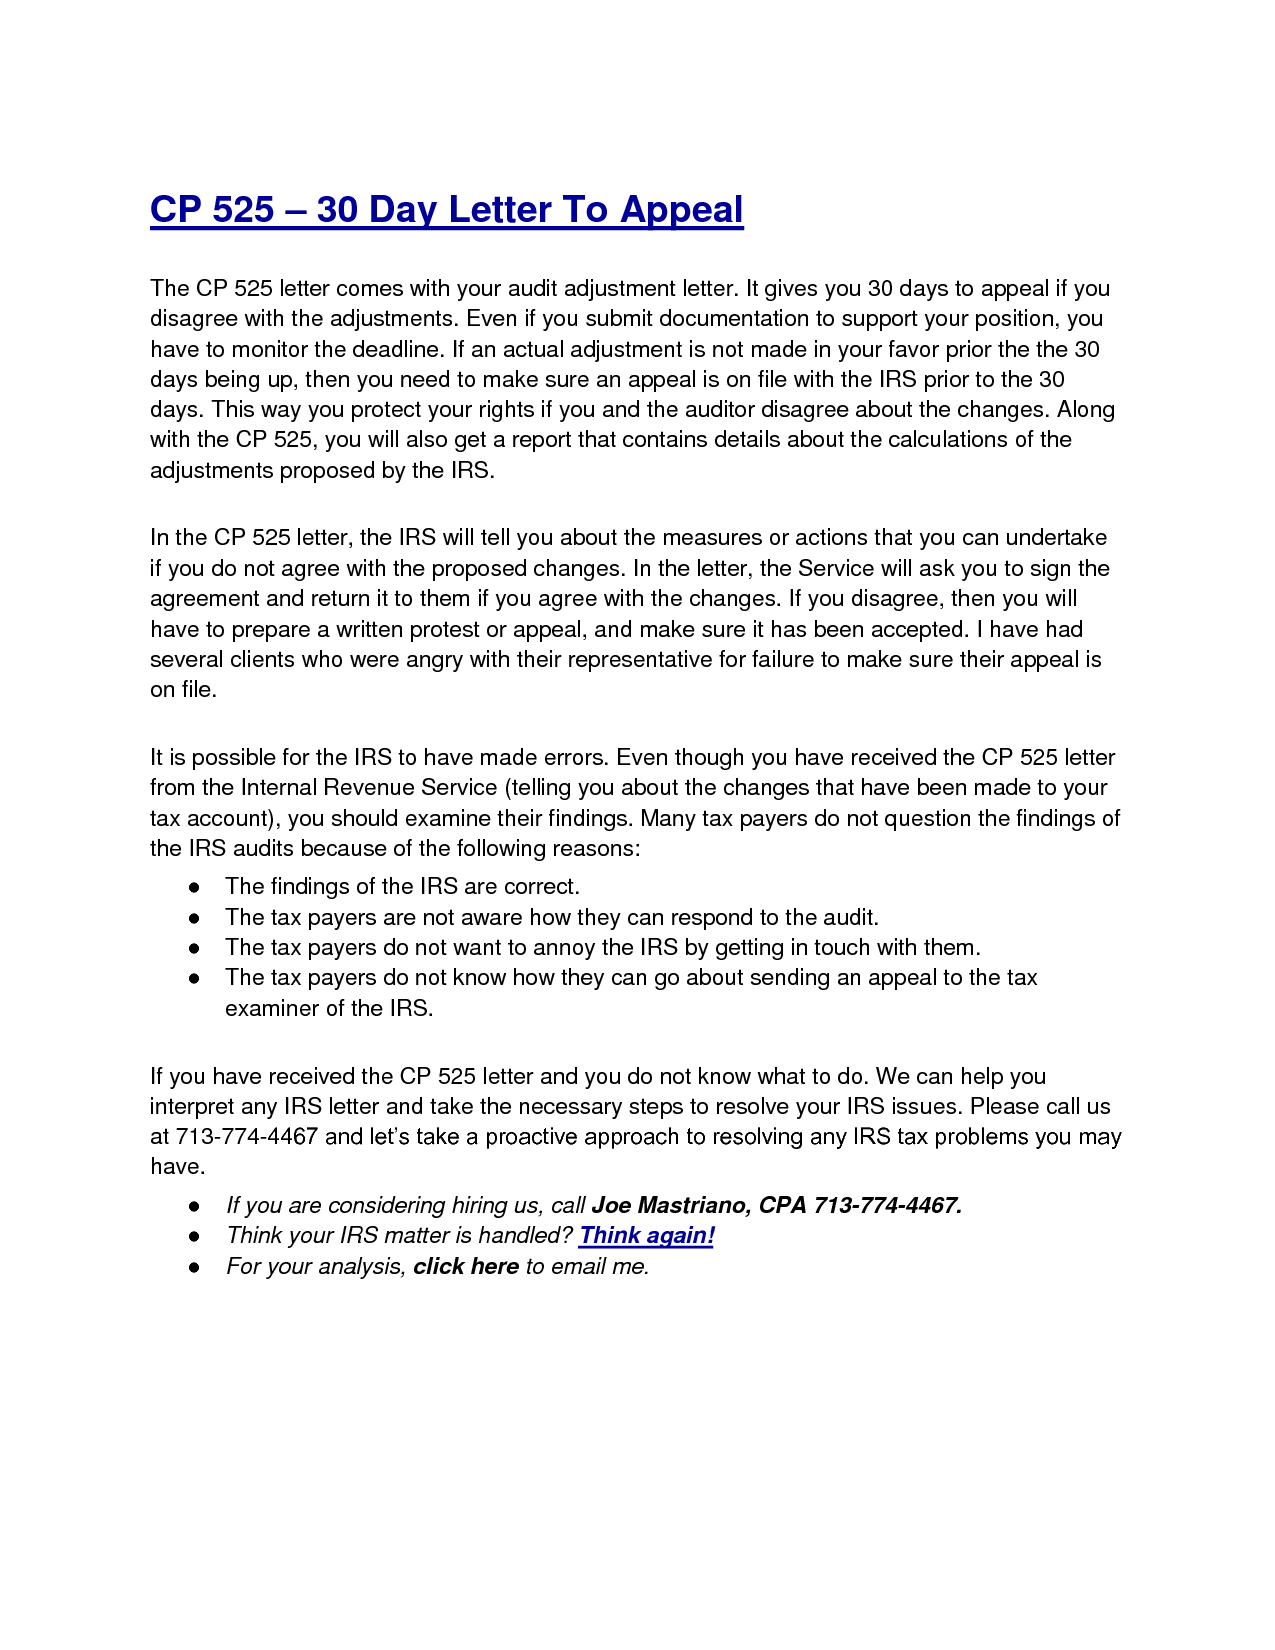 Audit Reconsideration Letter Template - How to Write A Letter to Irs Sample Image Collections Letter